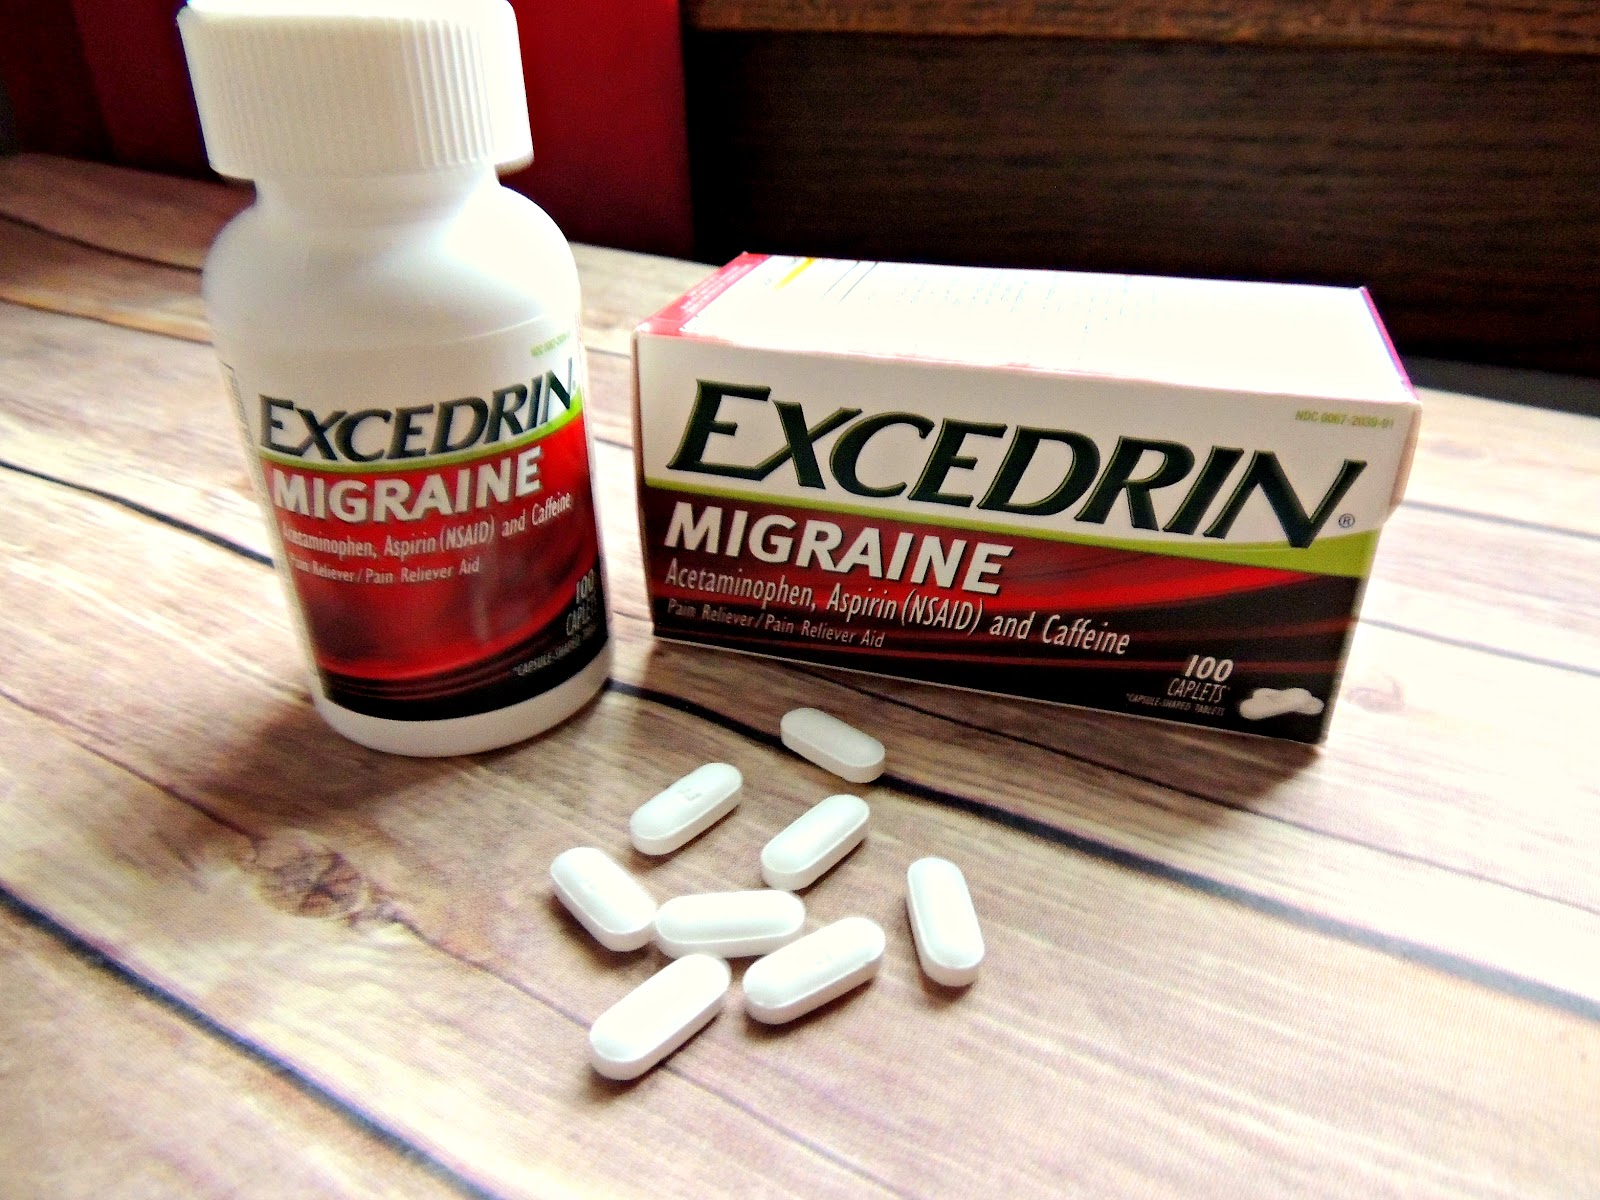 Excedrin® Migraine First Aid Kit for the Family #MoreMomentsWithExcedrin #CollectiveBias #ad 4.jpg